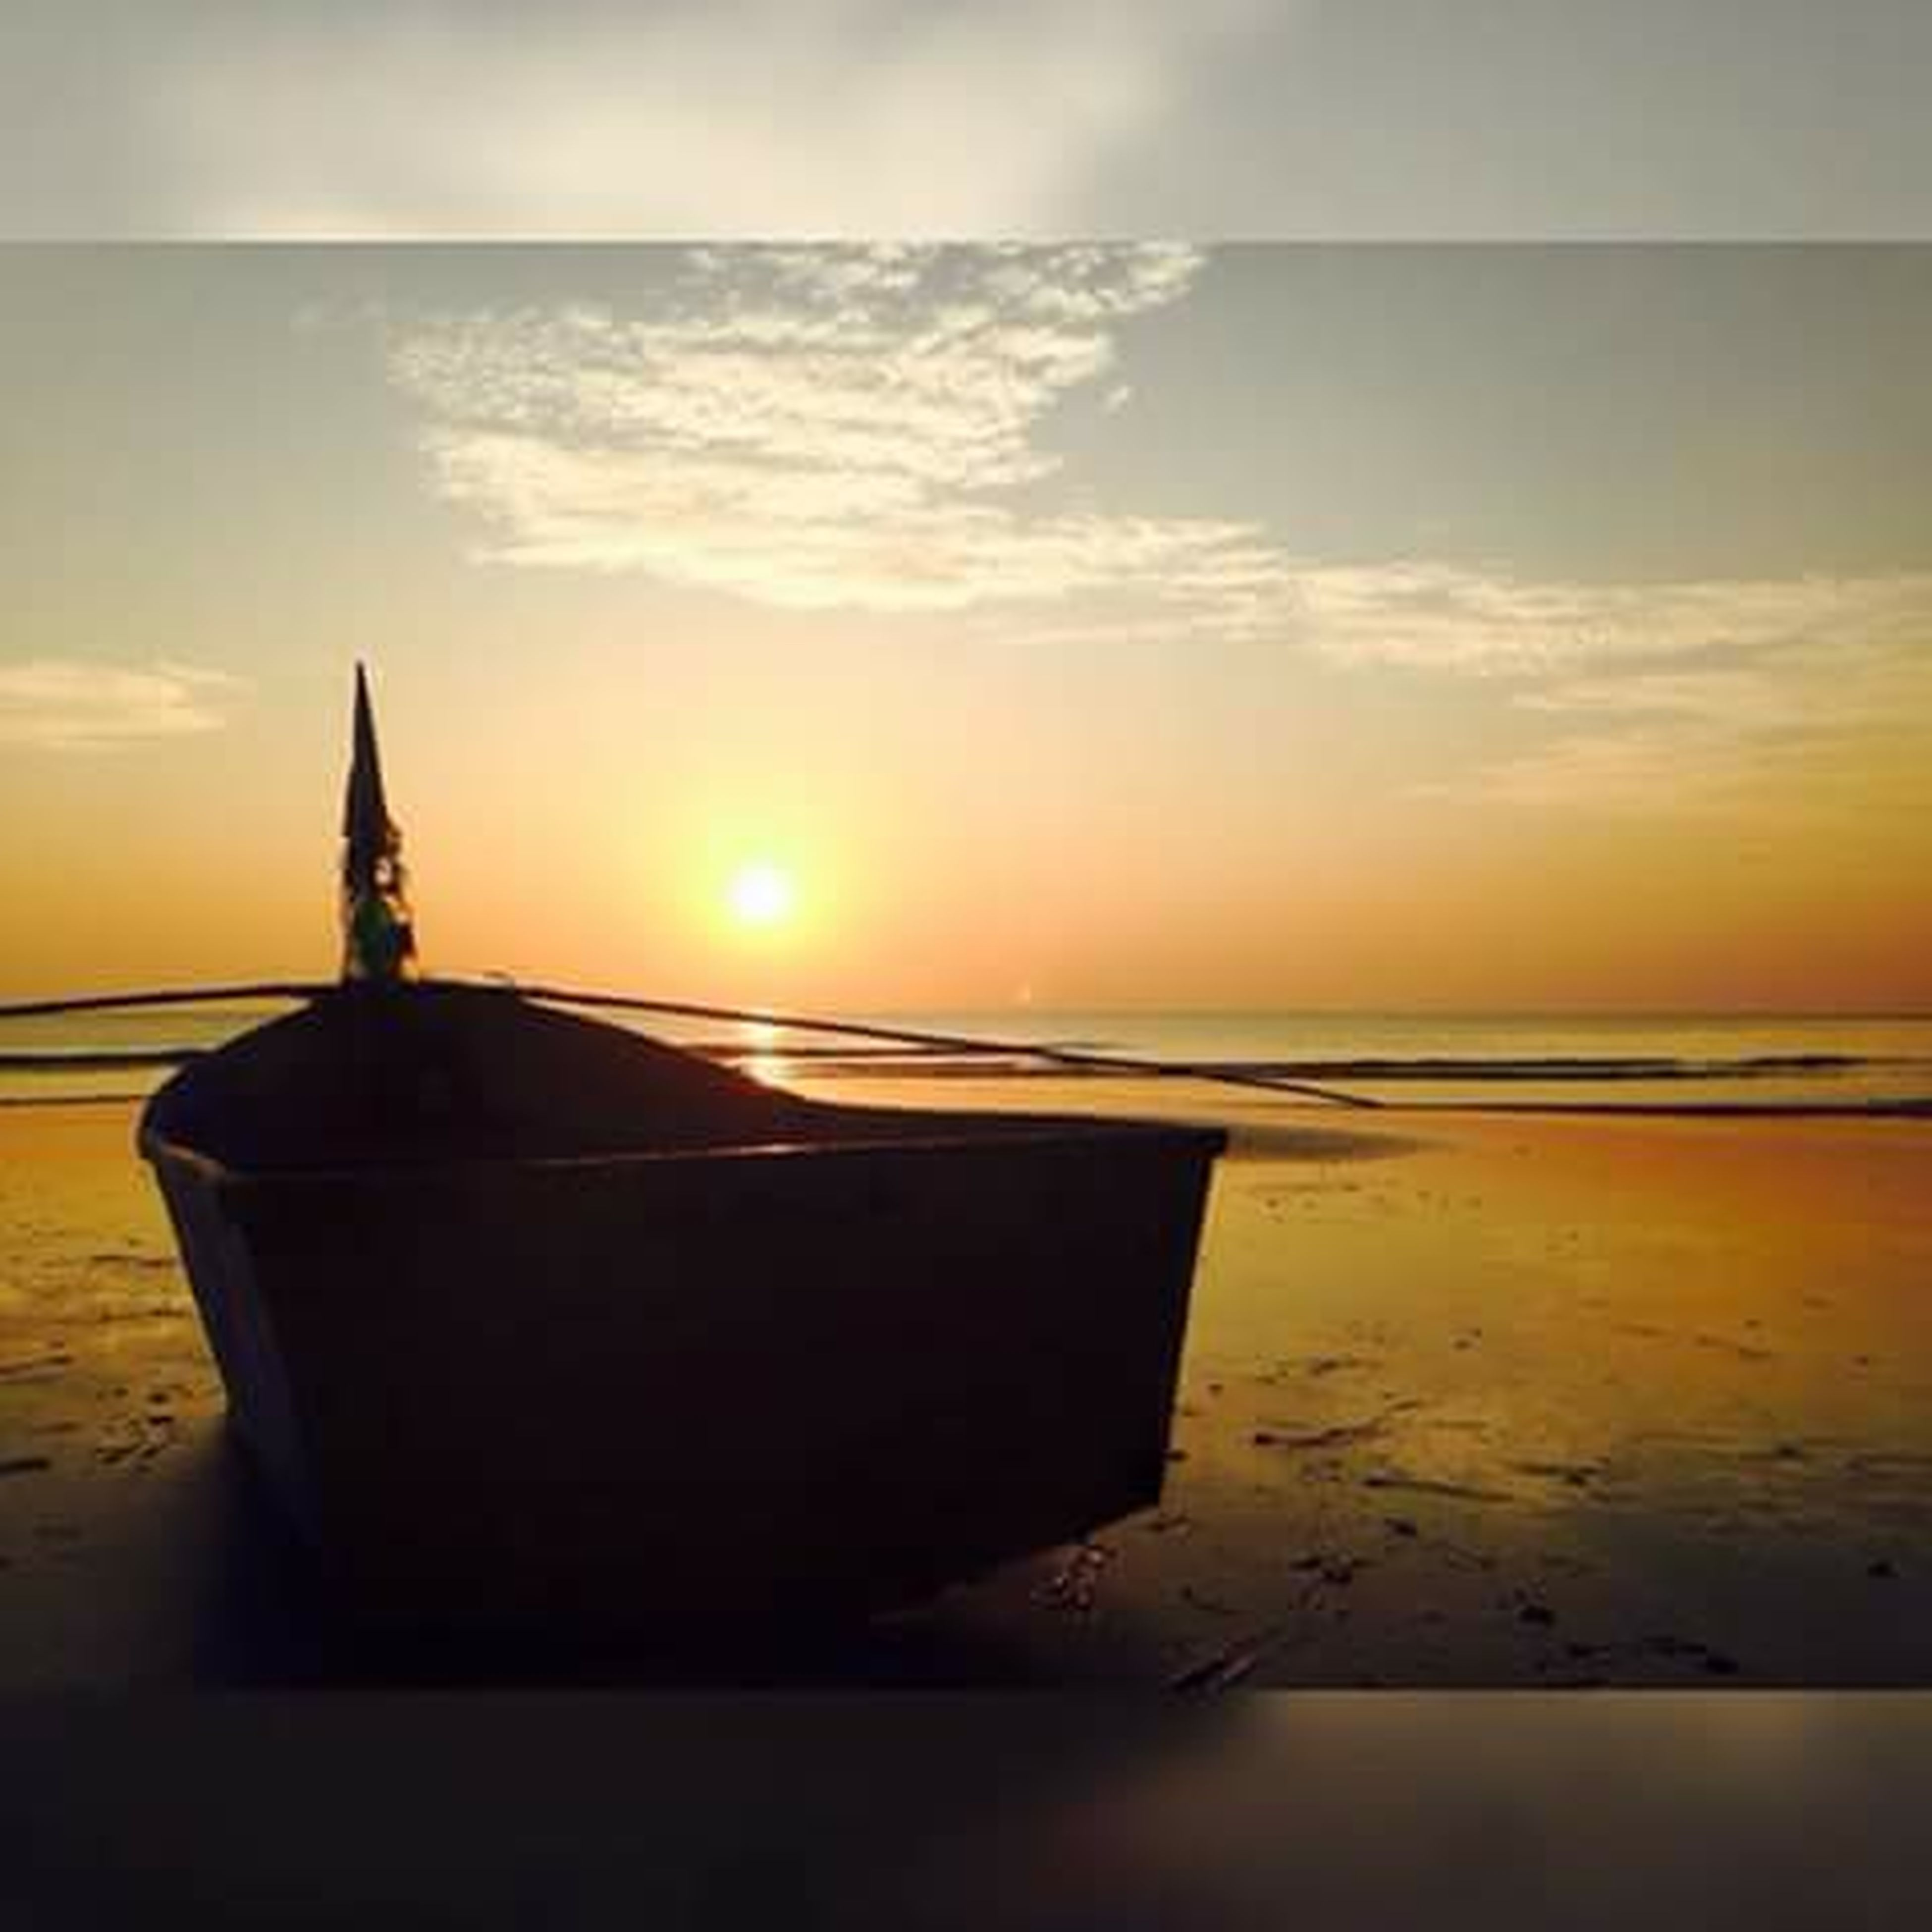 sea, horizon over water, sunset, water, beach, sky, scenics, shore, tranquil scene, tranquility, beauty in nature, nature, orange color, idyllic, cloud - sky, sun, sunlight, sand, reflection, built structure